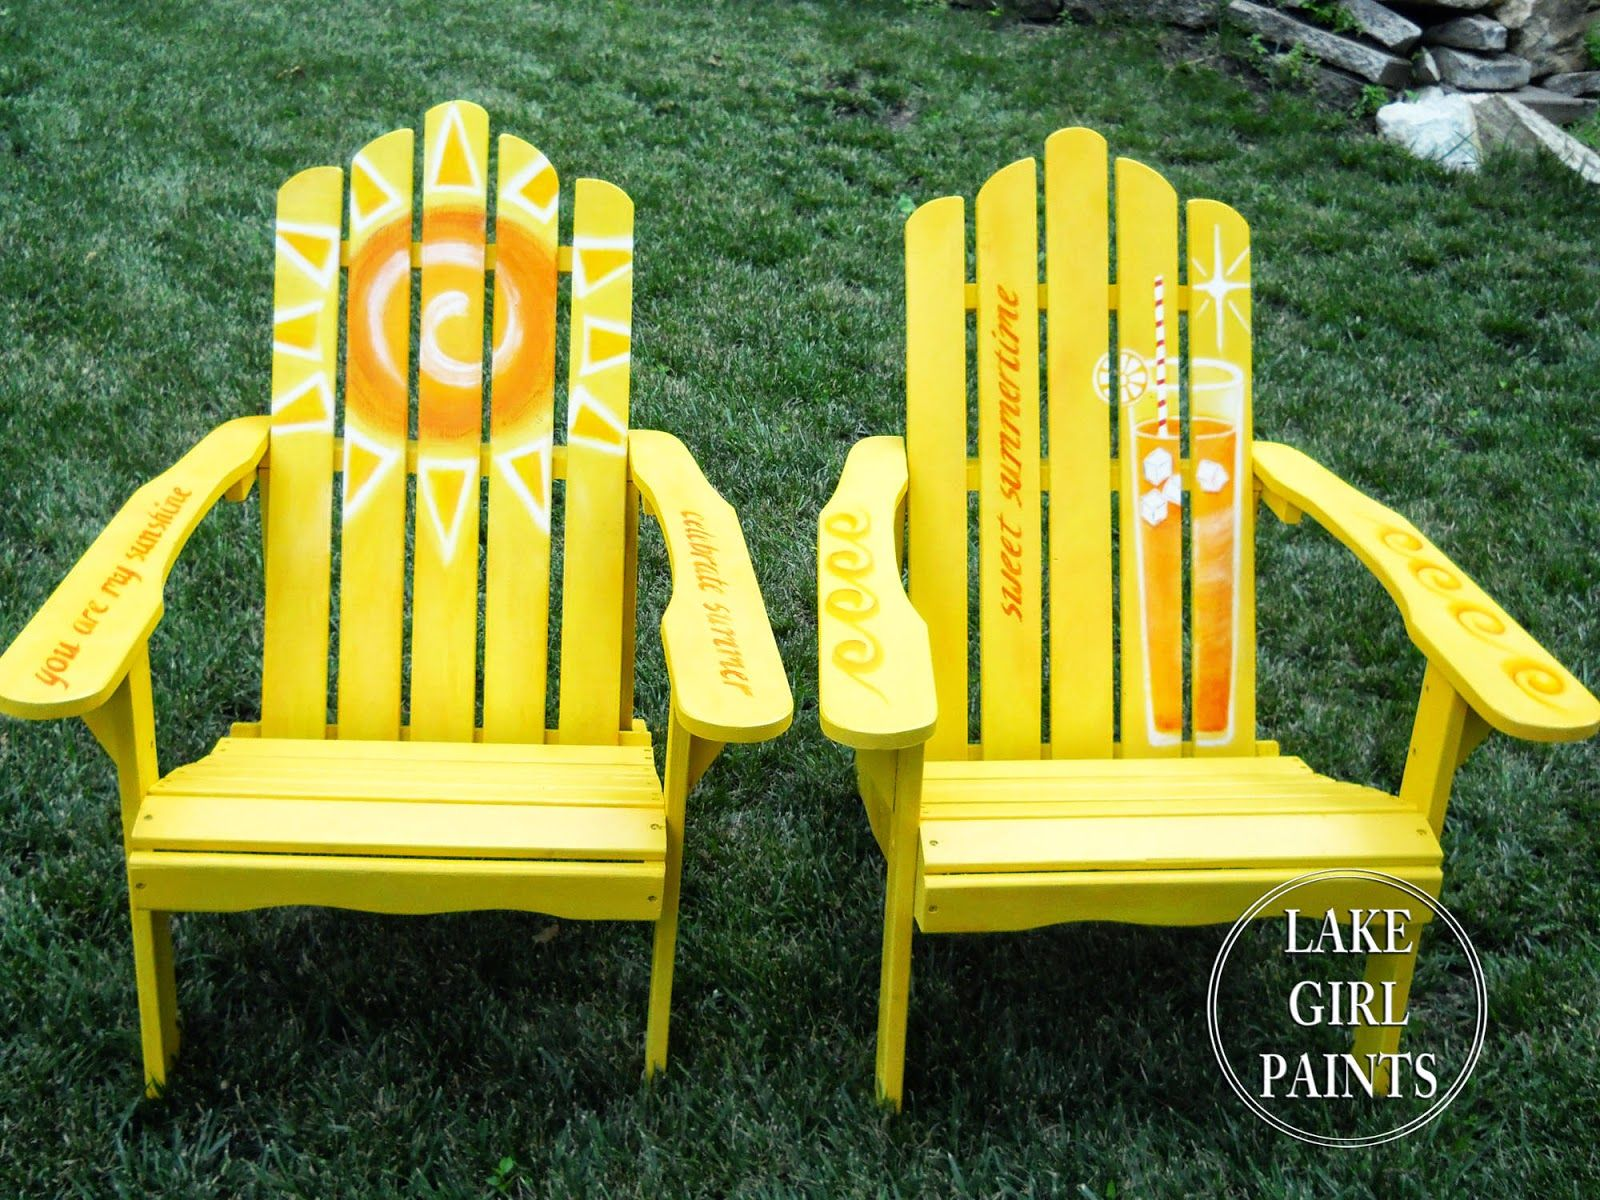 Lake Girl Paints Painting Sunny Adirondack Chairs outside